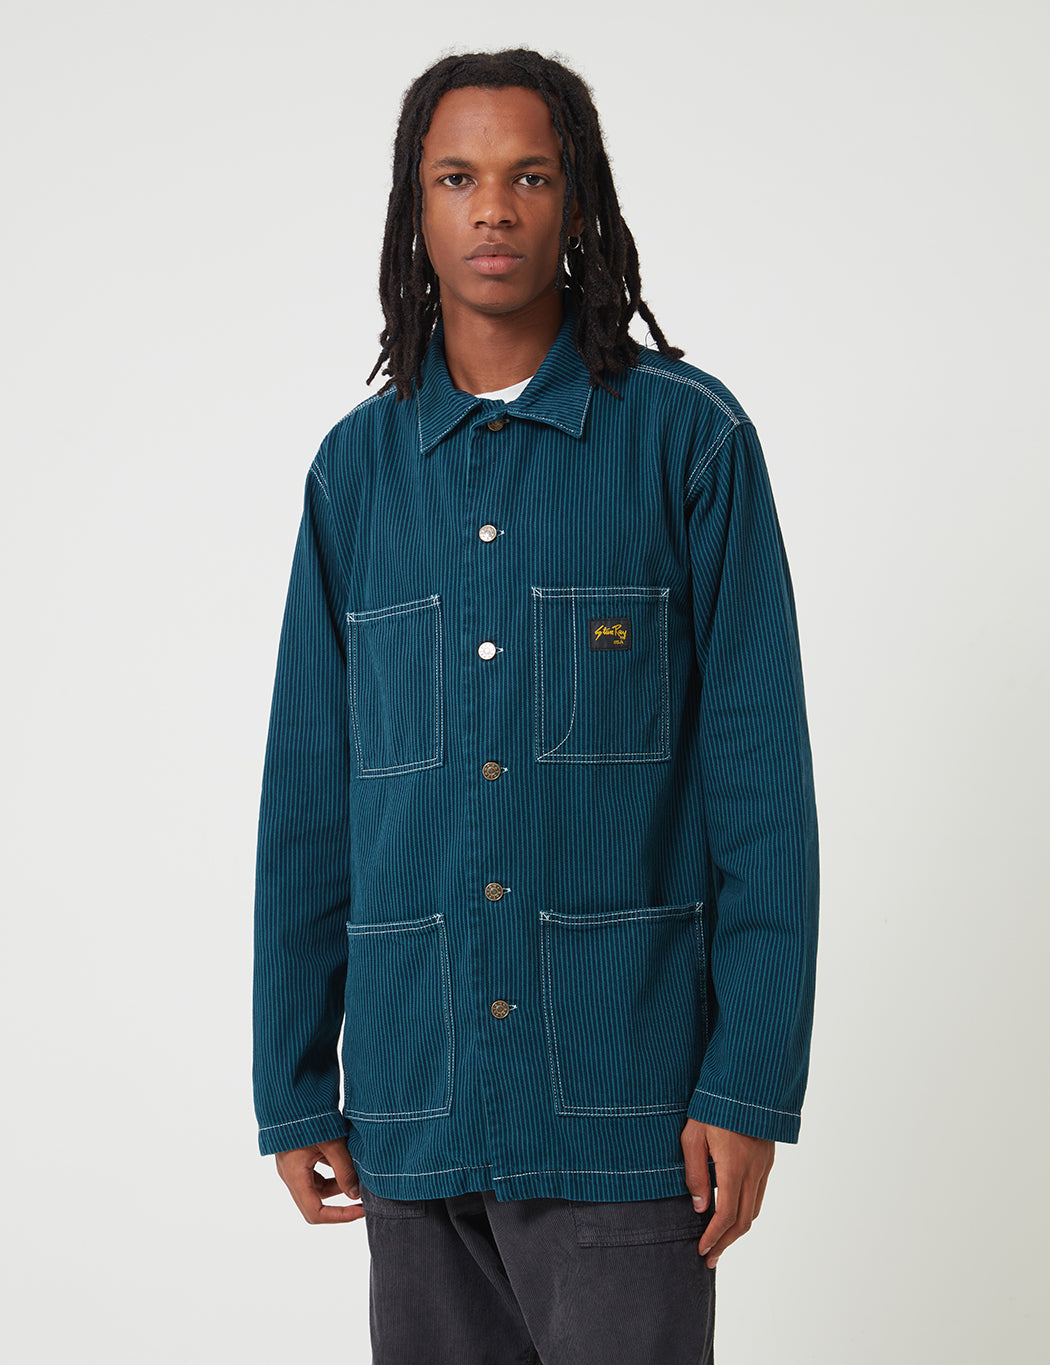 Stan Ray A2 Deck Jacket - Carbon Green Hickory | URBAN EXCESS.